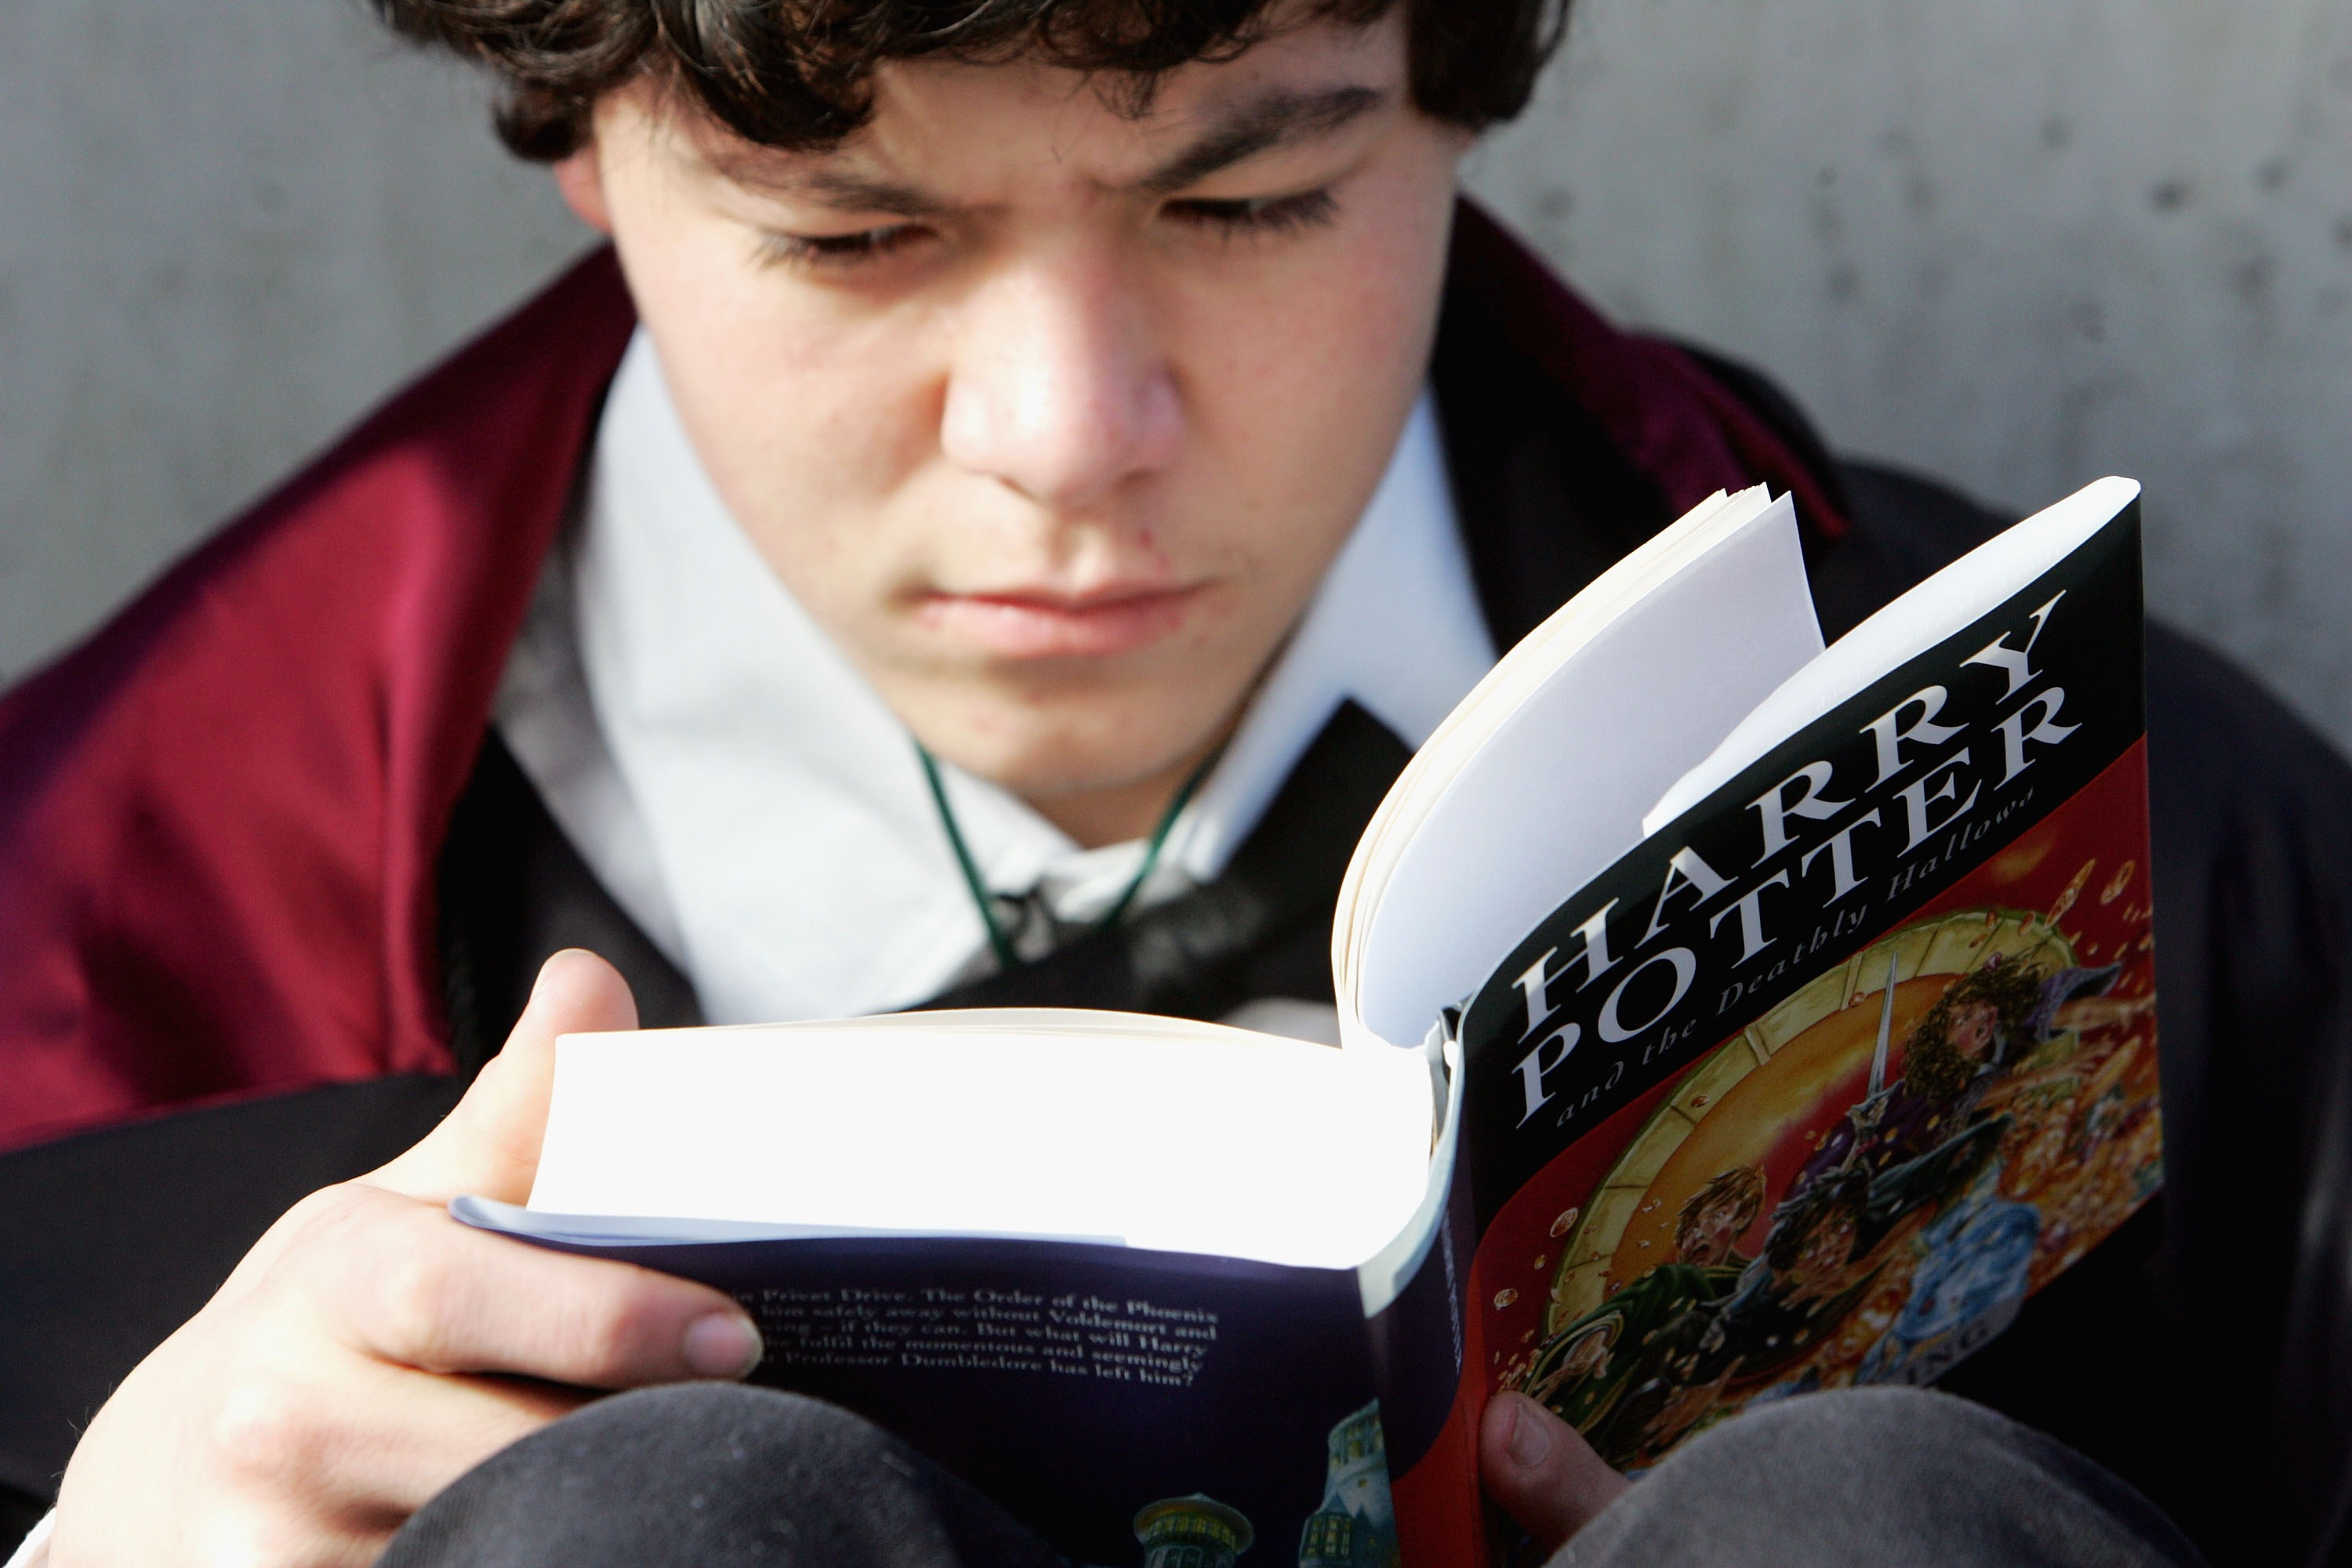 A Harry Potter fan begins to read the final novel by author J.K. Rowling,  Harry Potter and the Deathly Hallows  in 2007.